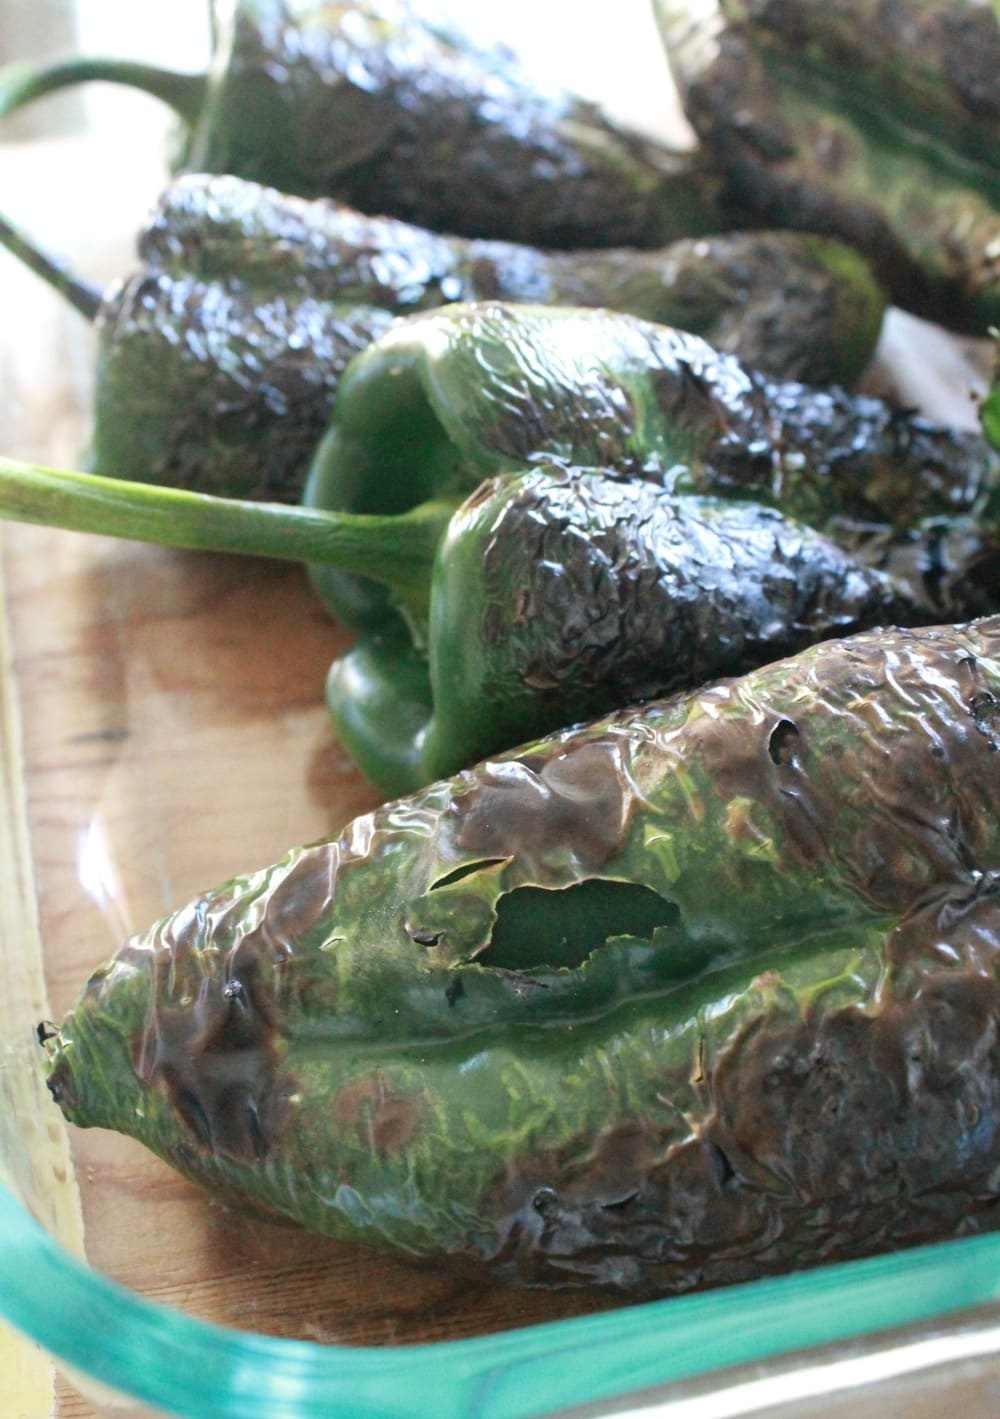 Roasted Poblano Peppers in a glass dish.